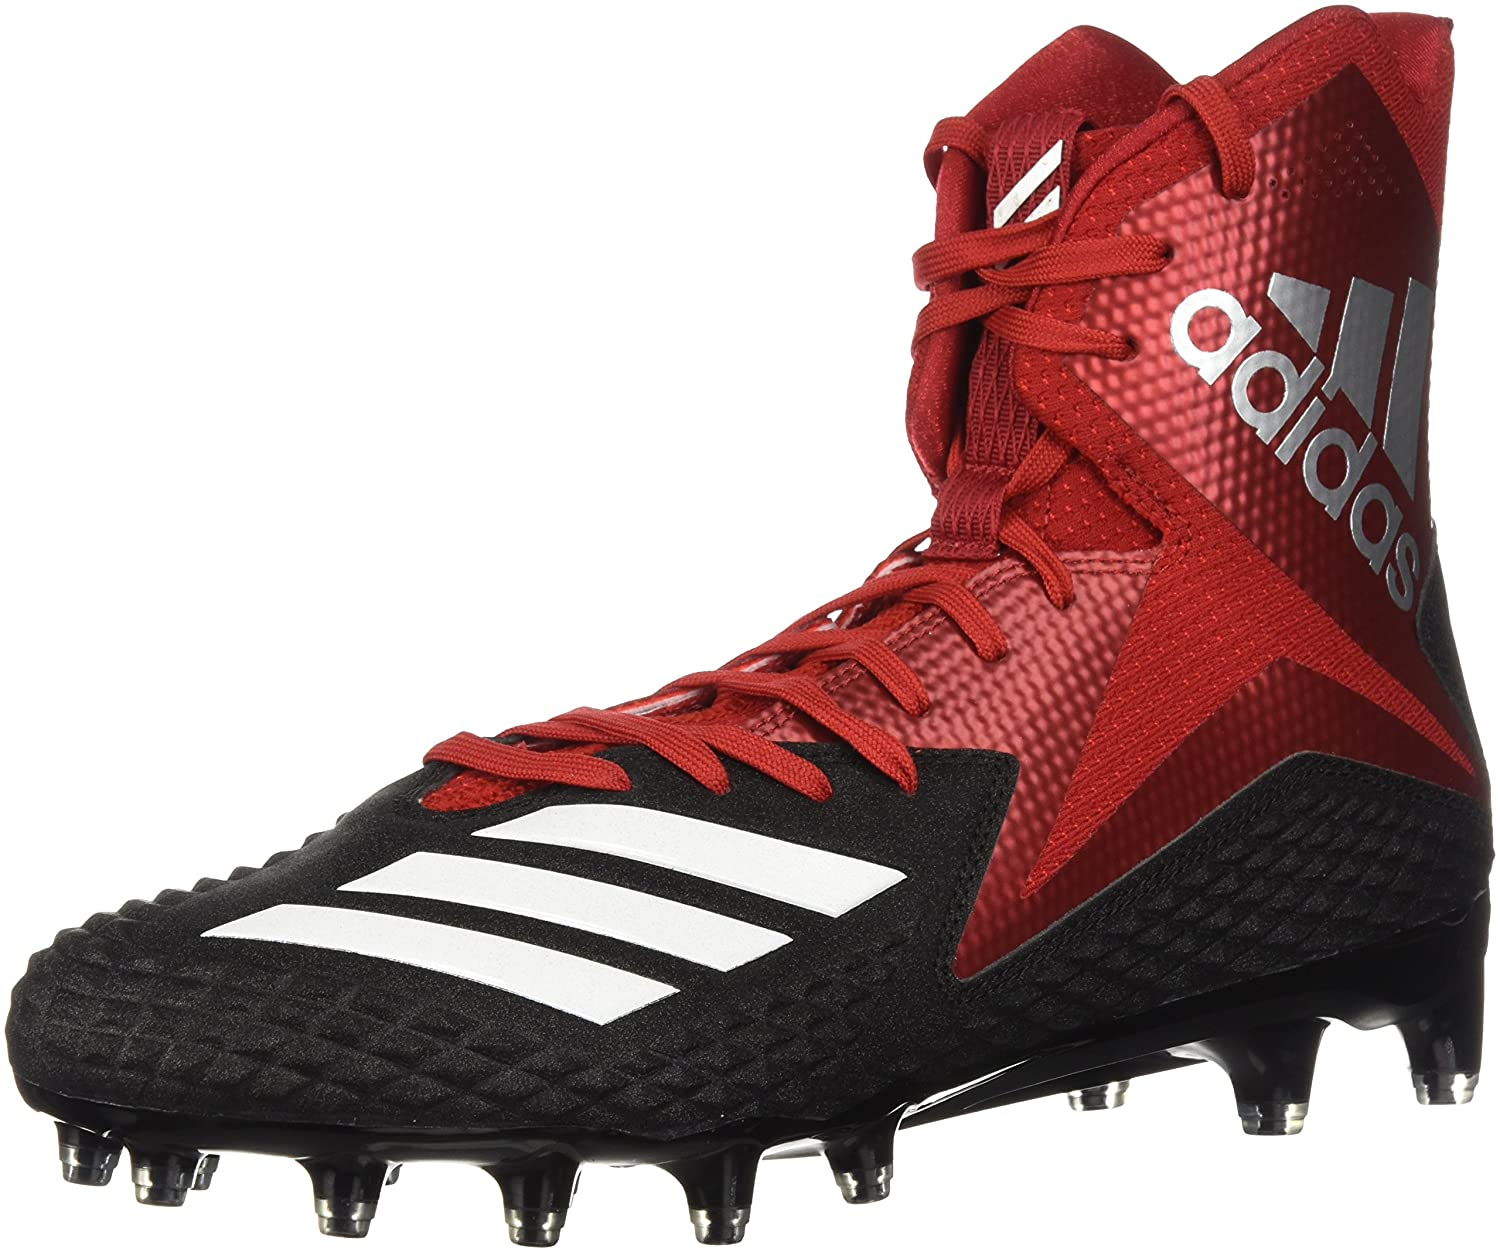 Adidas Herren High Freak X Carbon Mid Football-Schuhe B0728B7CGQ  | Speichern